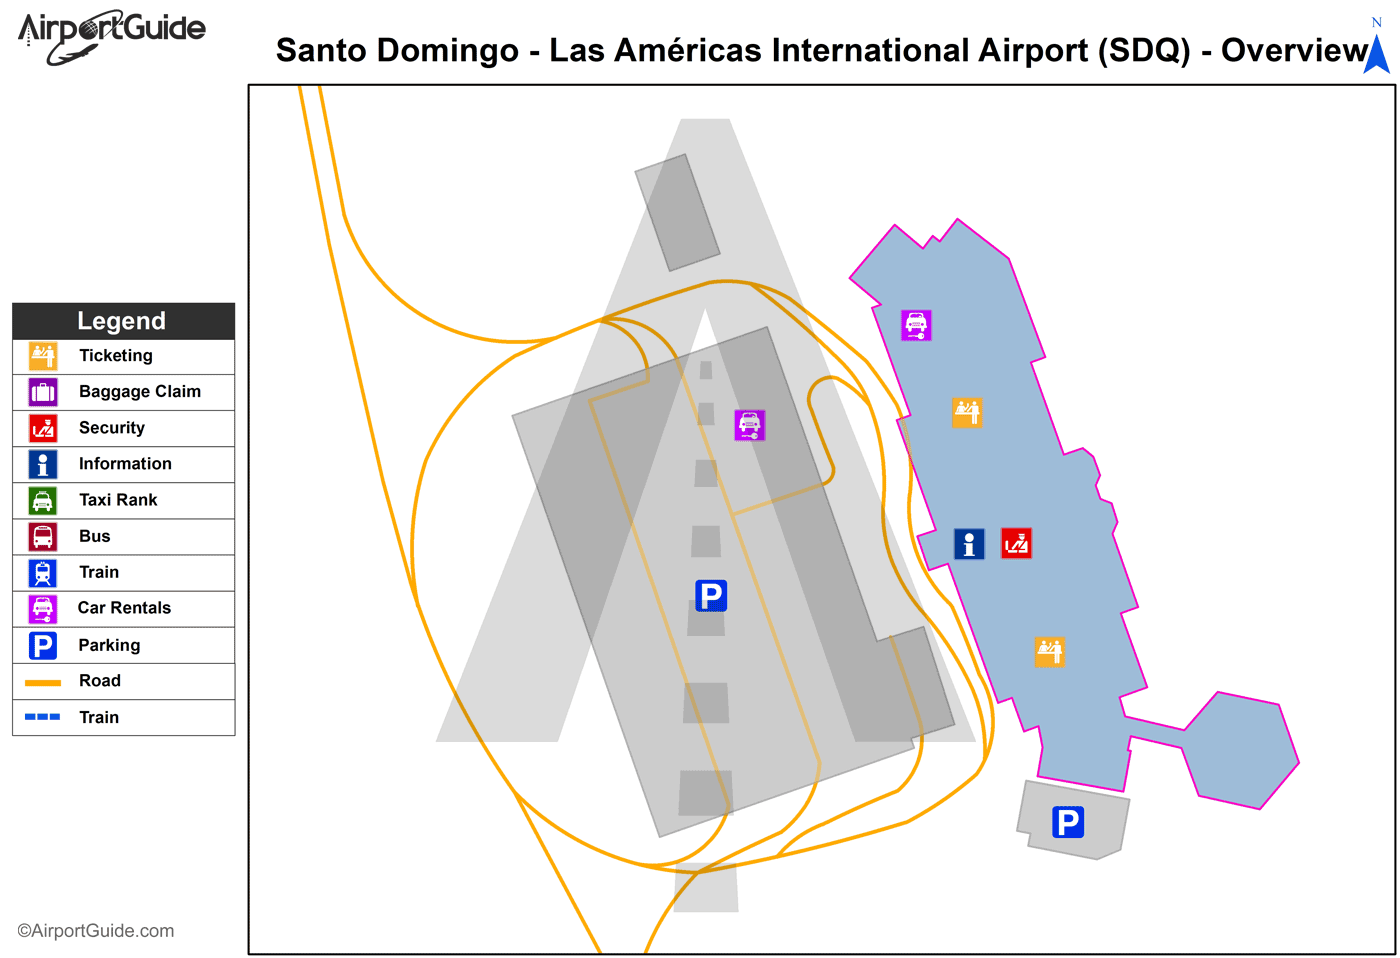 Santo Domingo - Las Américas International (SDQ) Airport Terminal Map - Overview